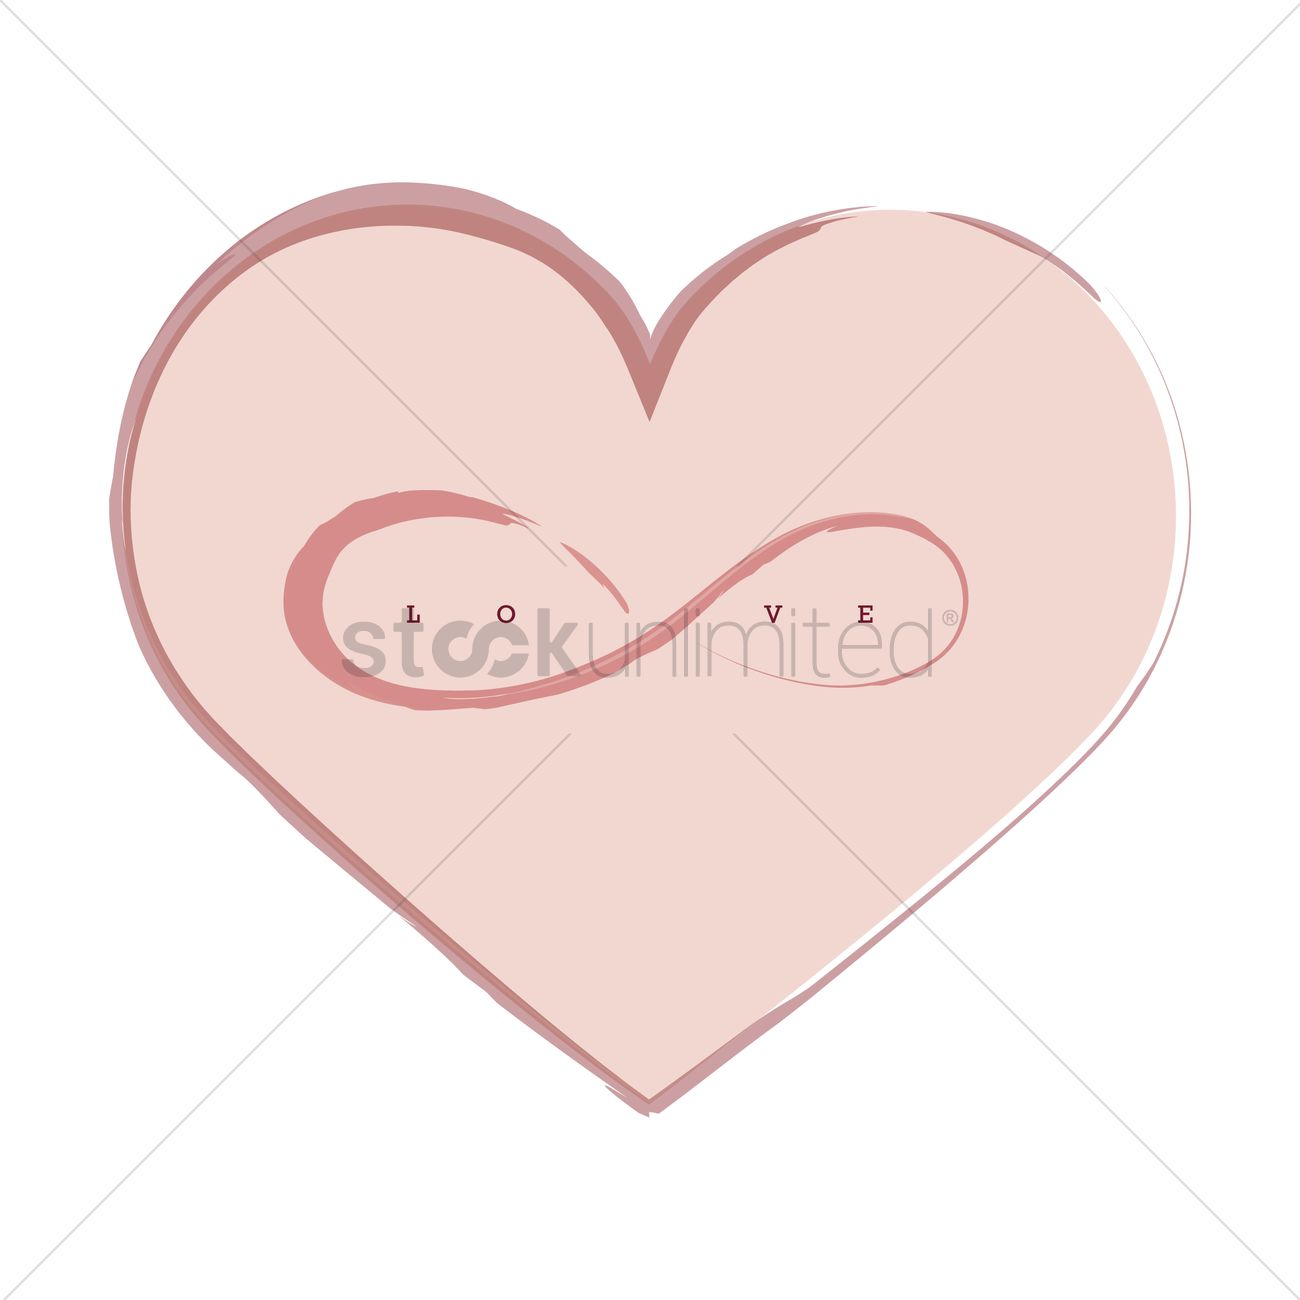 Heart with infinity symbol vector image 1345508 stockunlimited heart with infinity symbol vector graphic buycottarizona Gallery